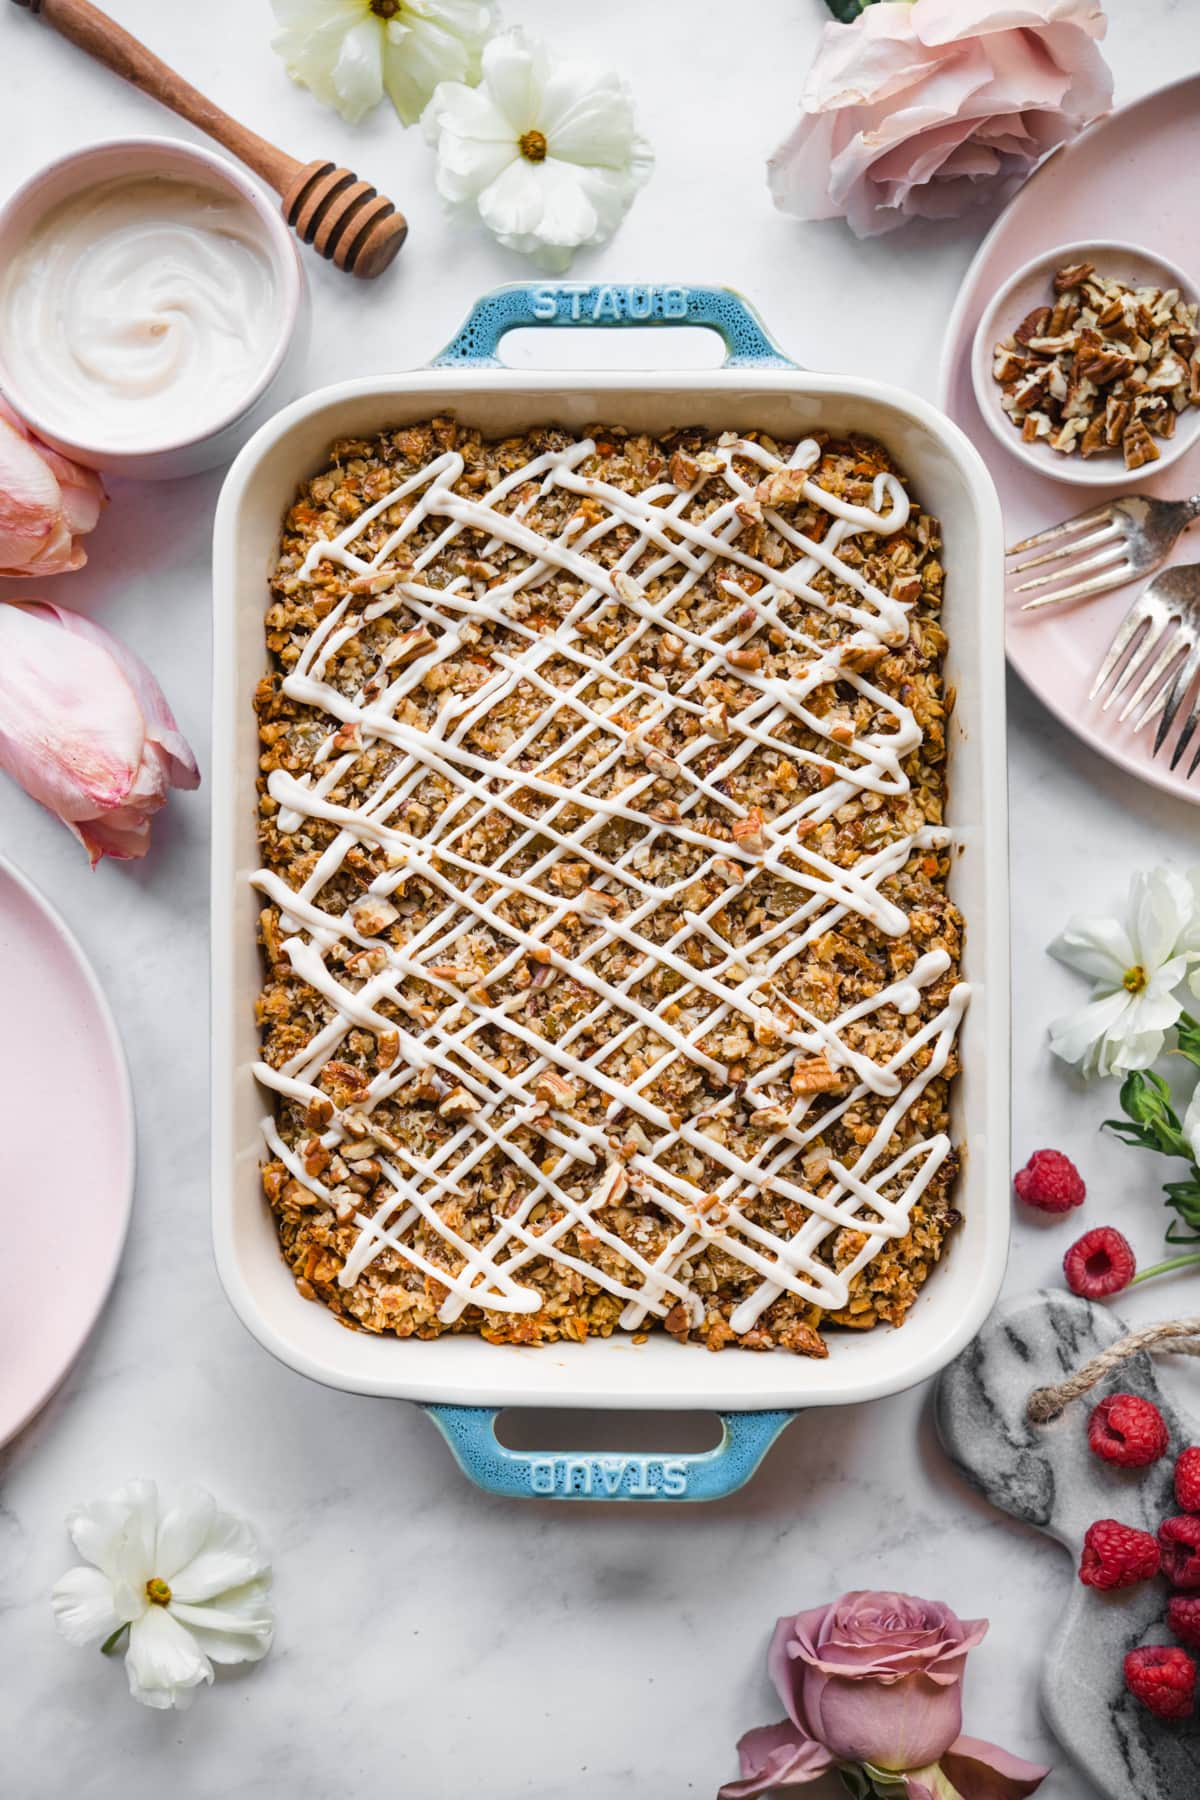 overhead view of vegan carrot cake baked in a blue baking dish with cream cheese glaze.